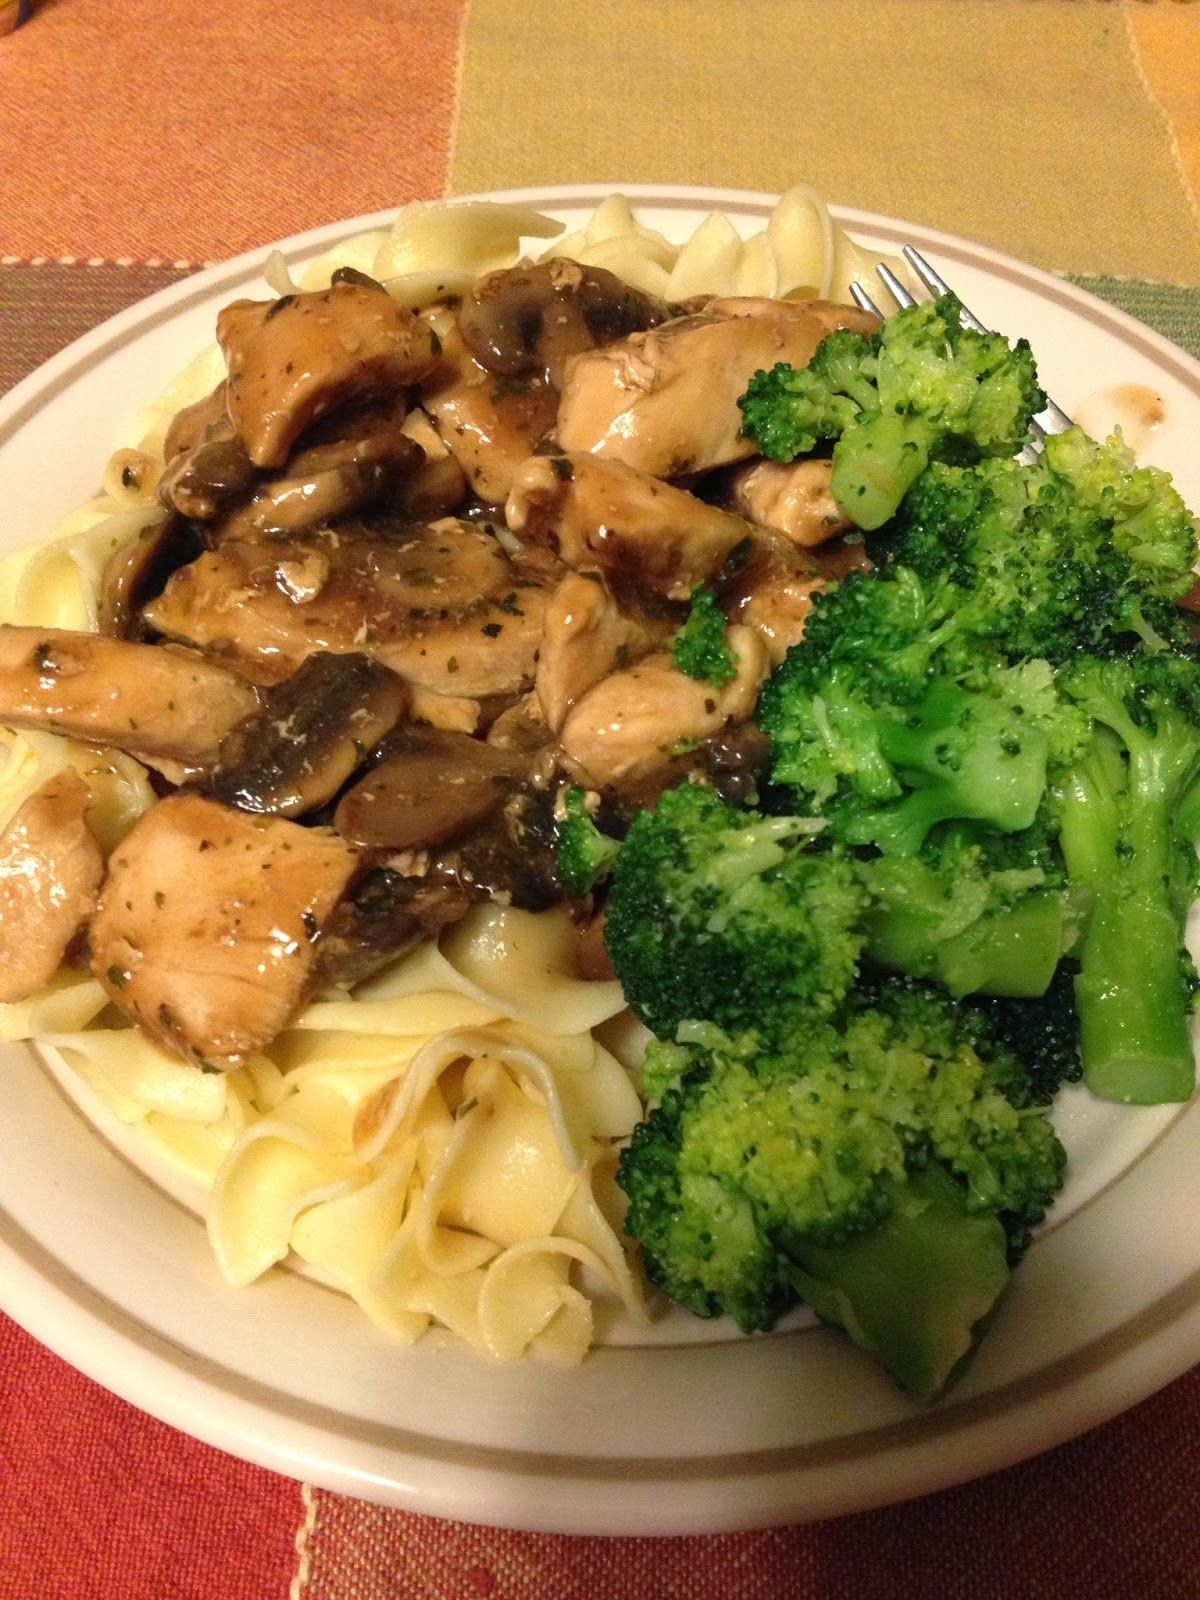 Weight Watcher Friendly Chicken Marsala With Mushrooms Over Noodles Healthy Recipes Healthy